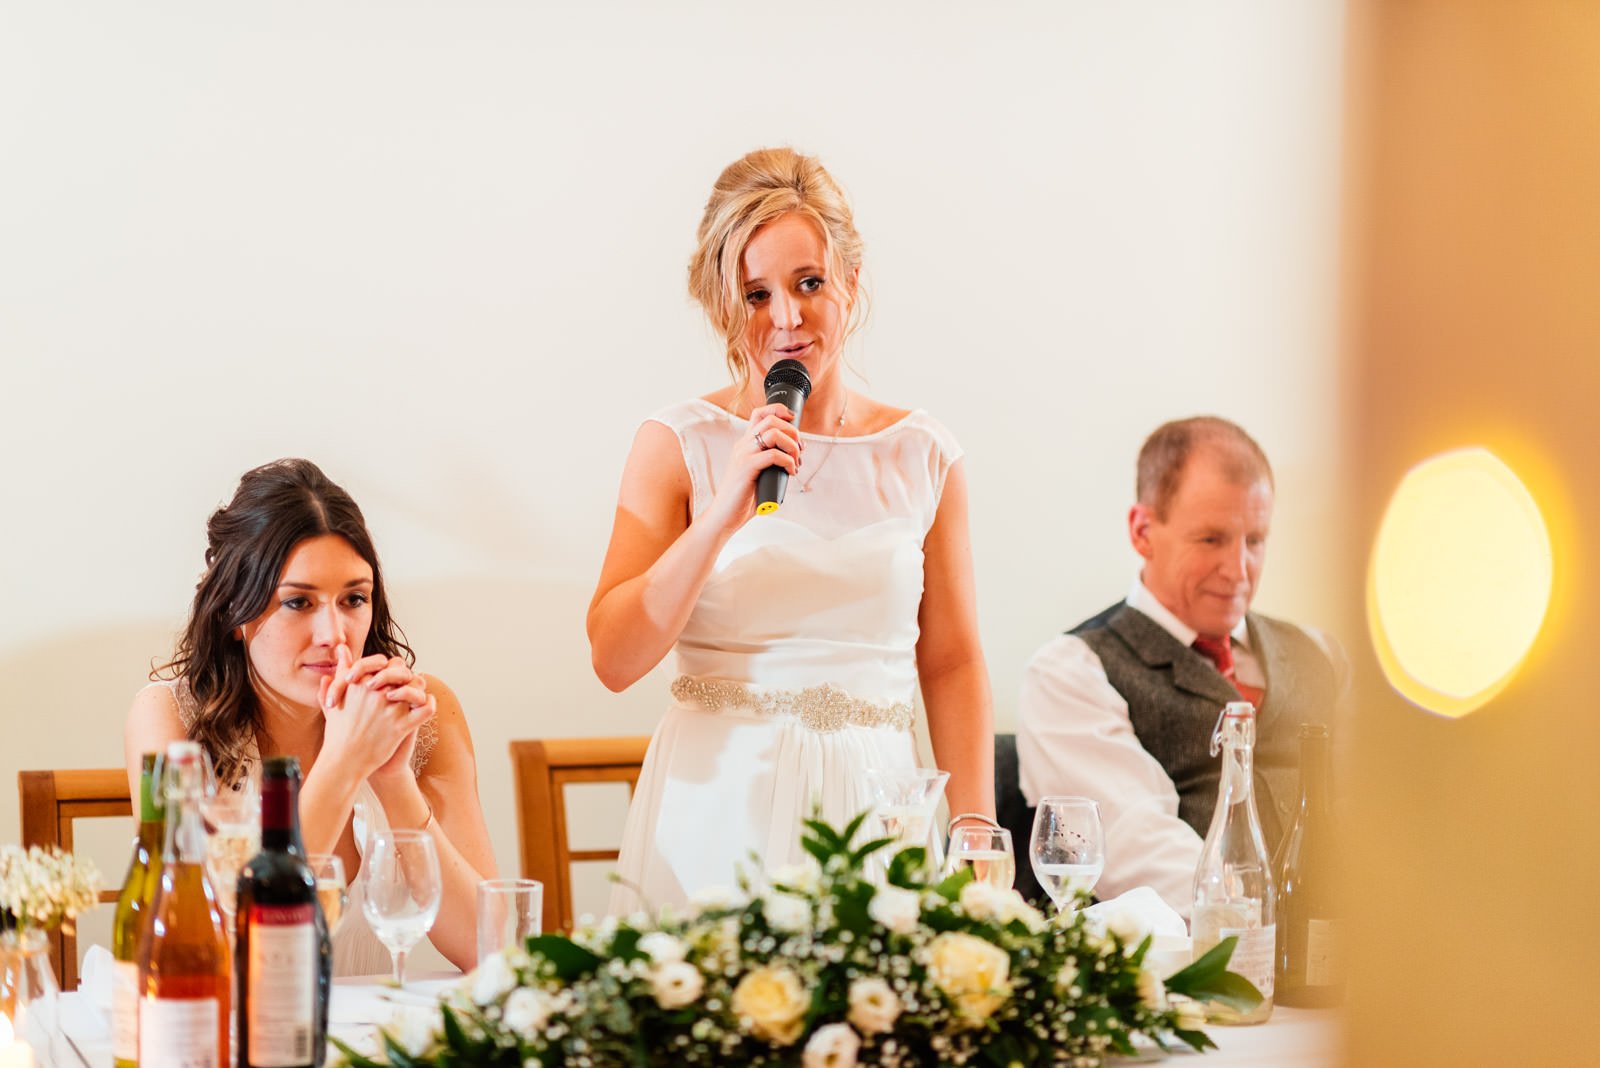 Bride giving a speech at wedding